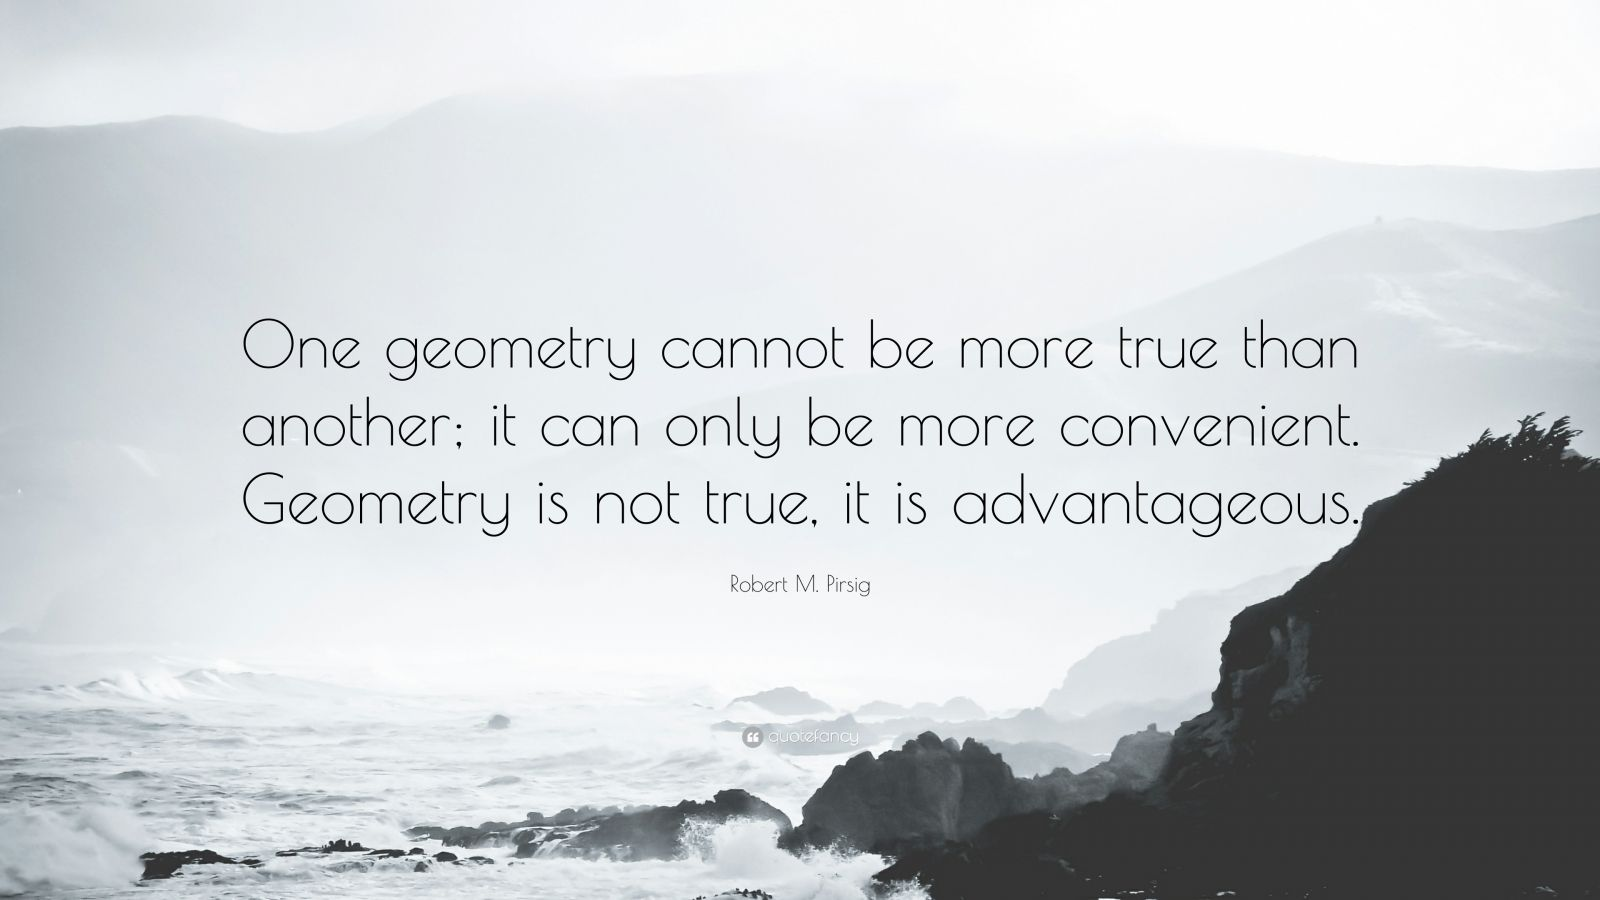 """Robert M. Pirsig Quote: """"One geometry cannot be more true than another; it can only be more convenient. Geometry is not true, it is advantageous."""""""